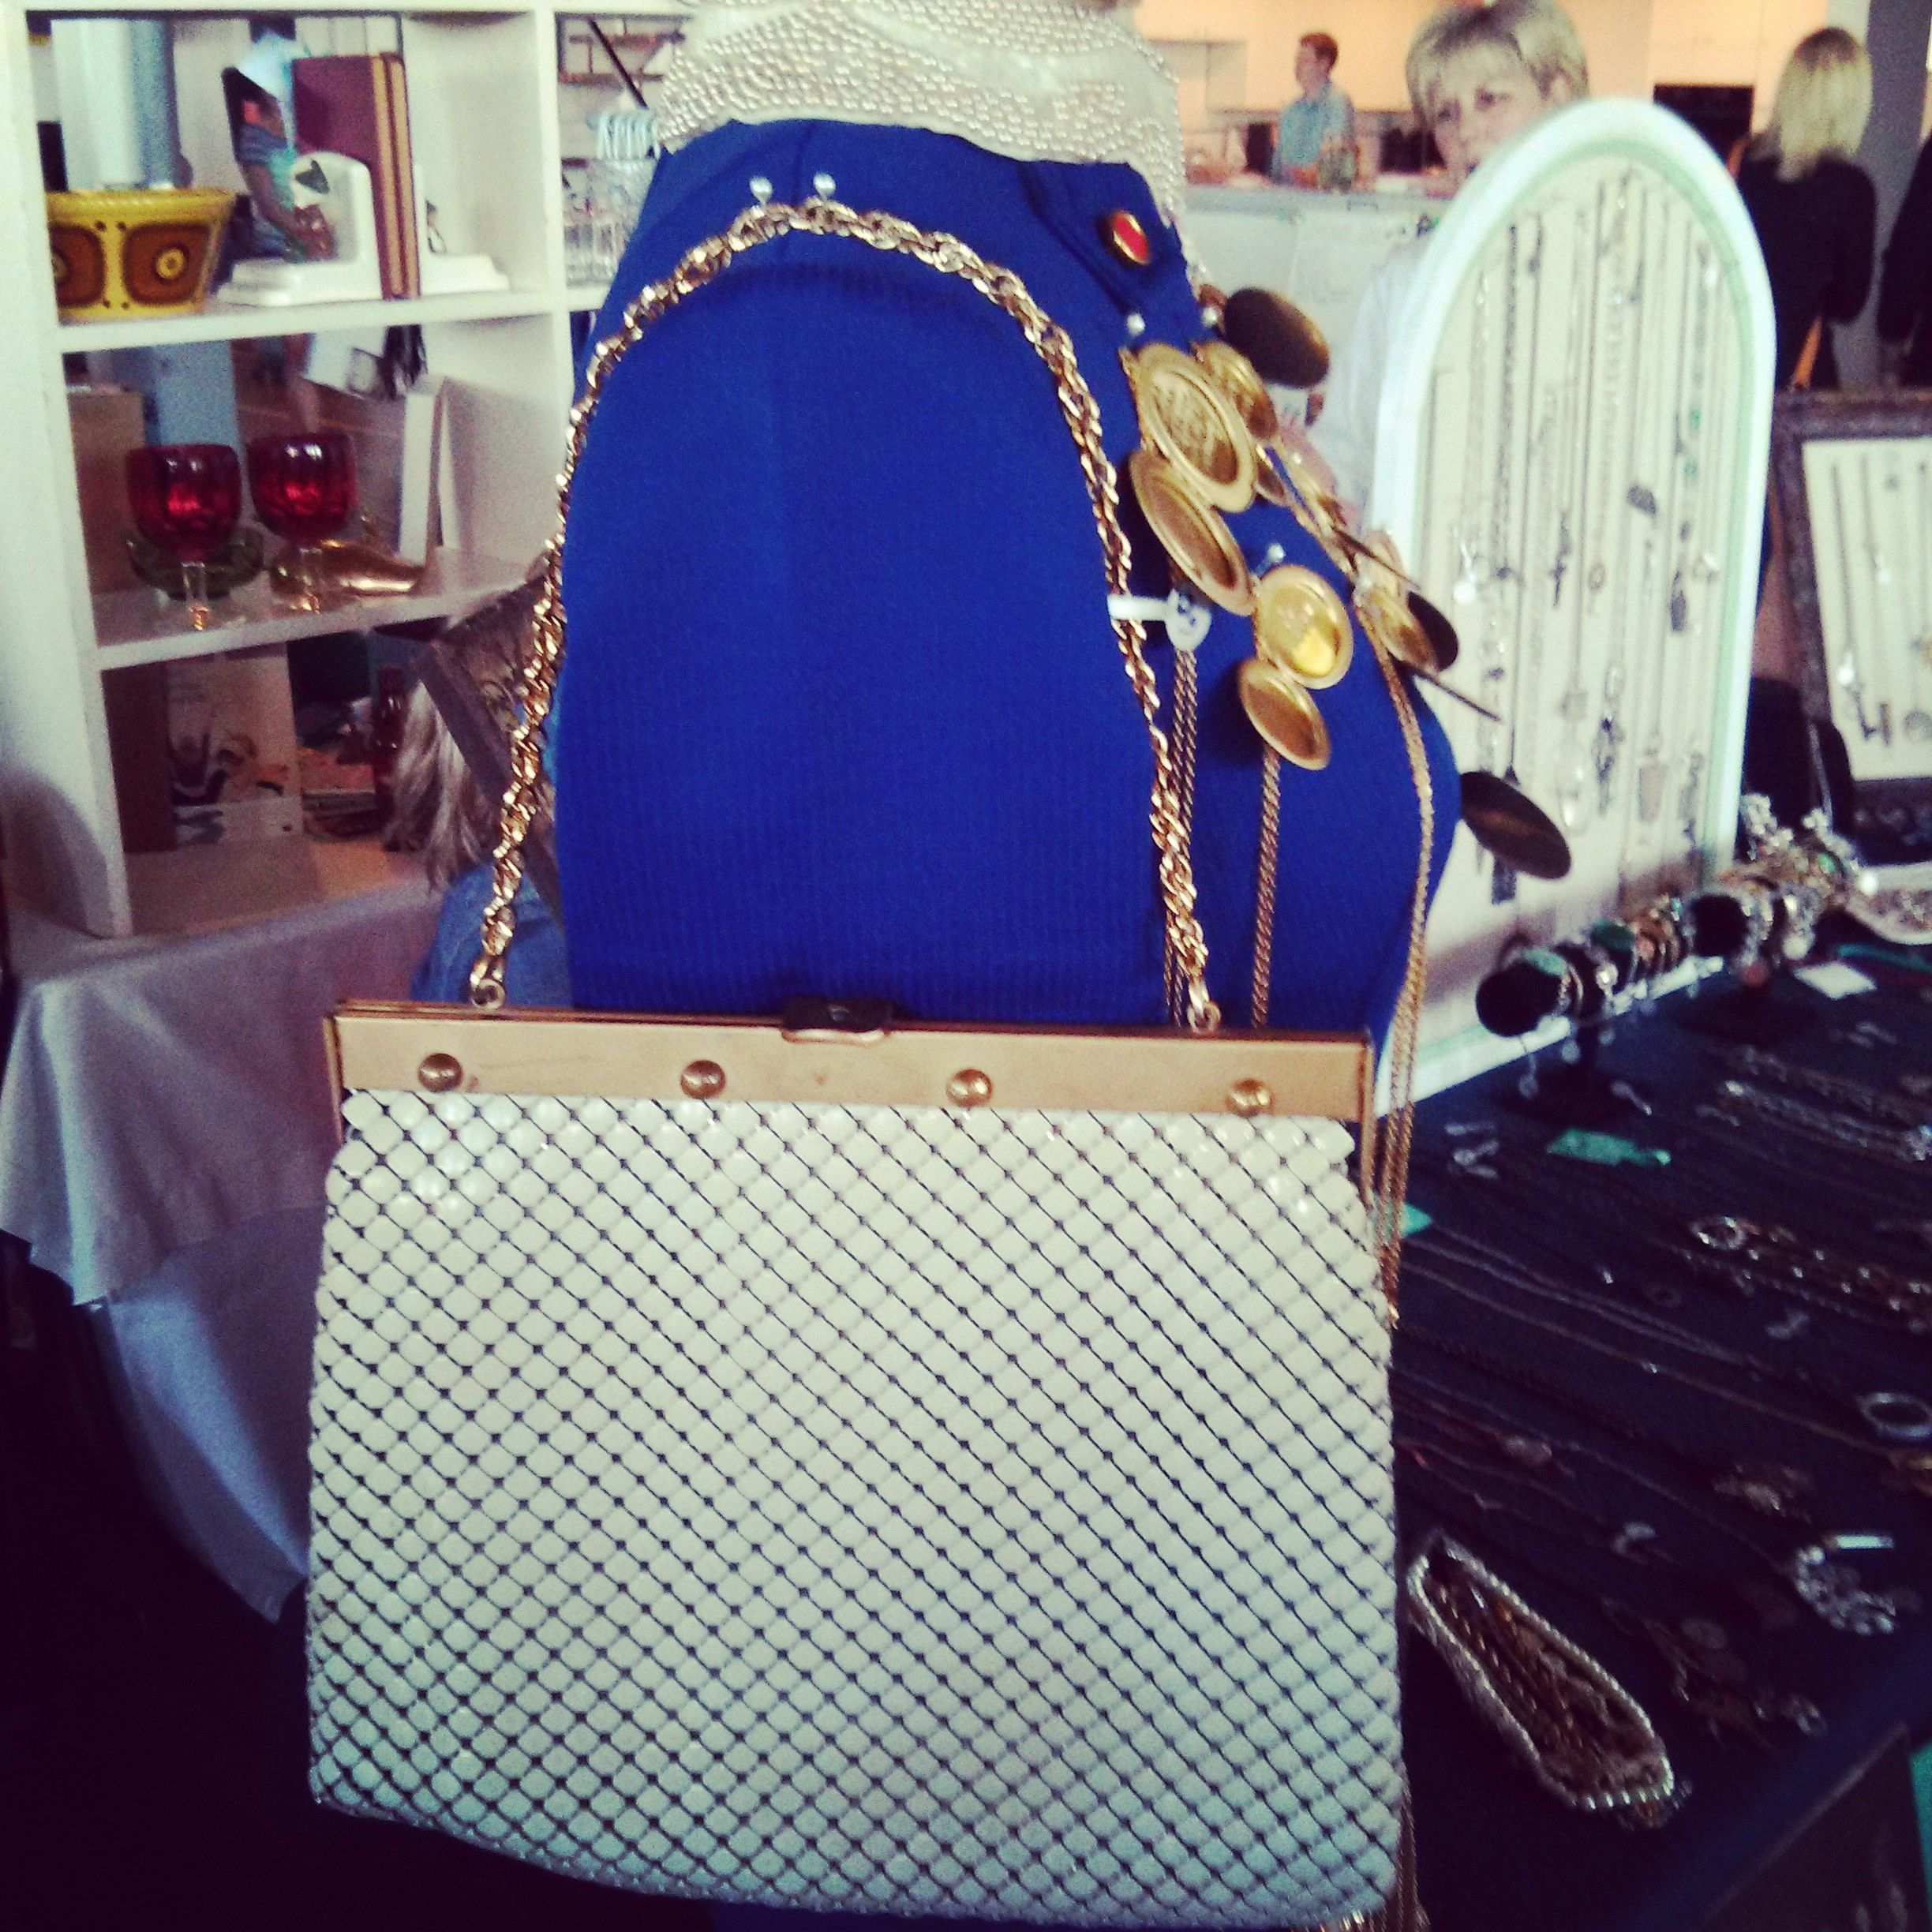 Vintage Purse...absolutely love!!! #love #style #womens #vintage